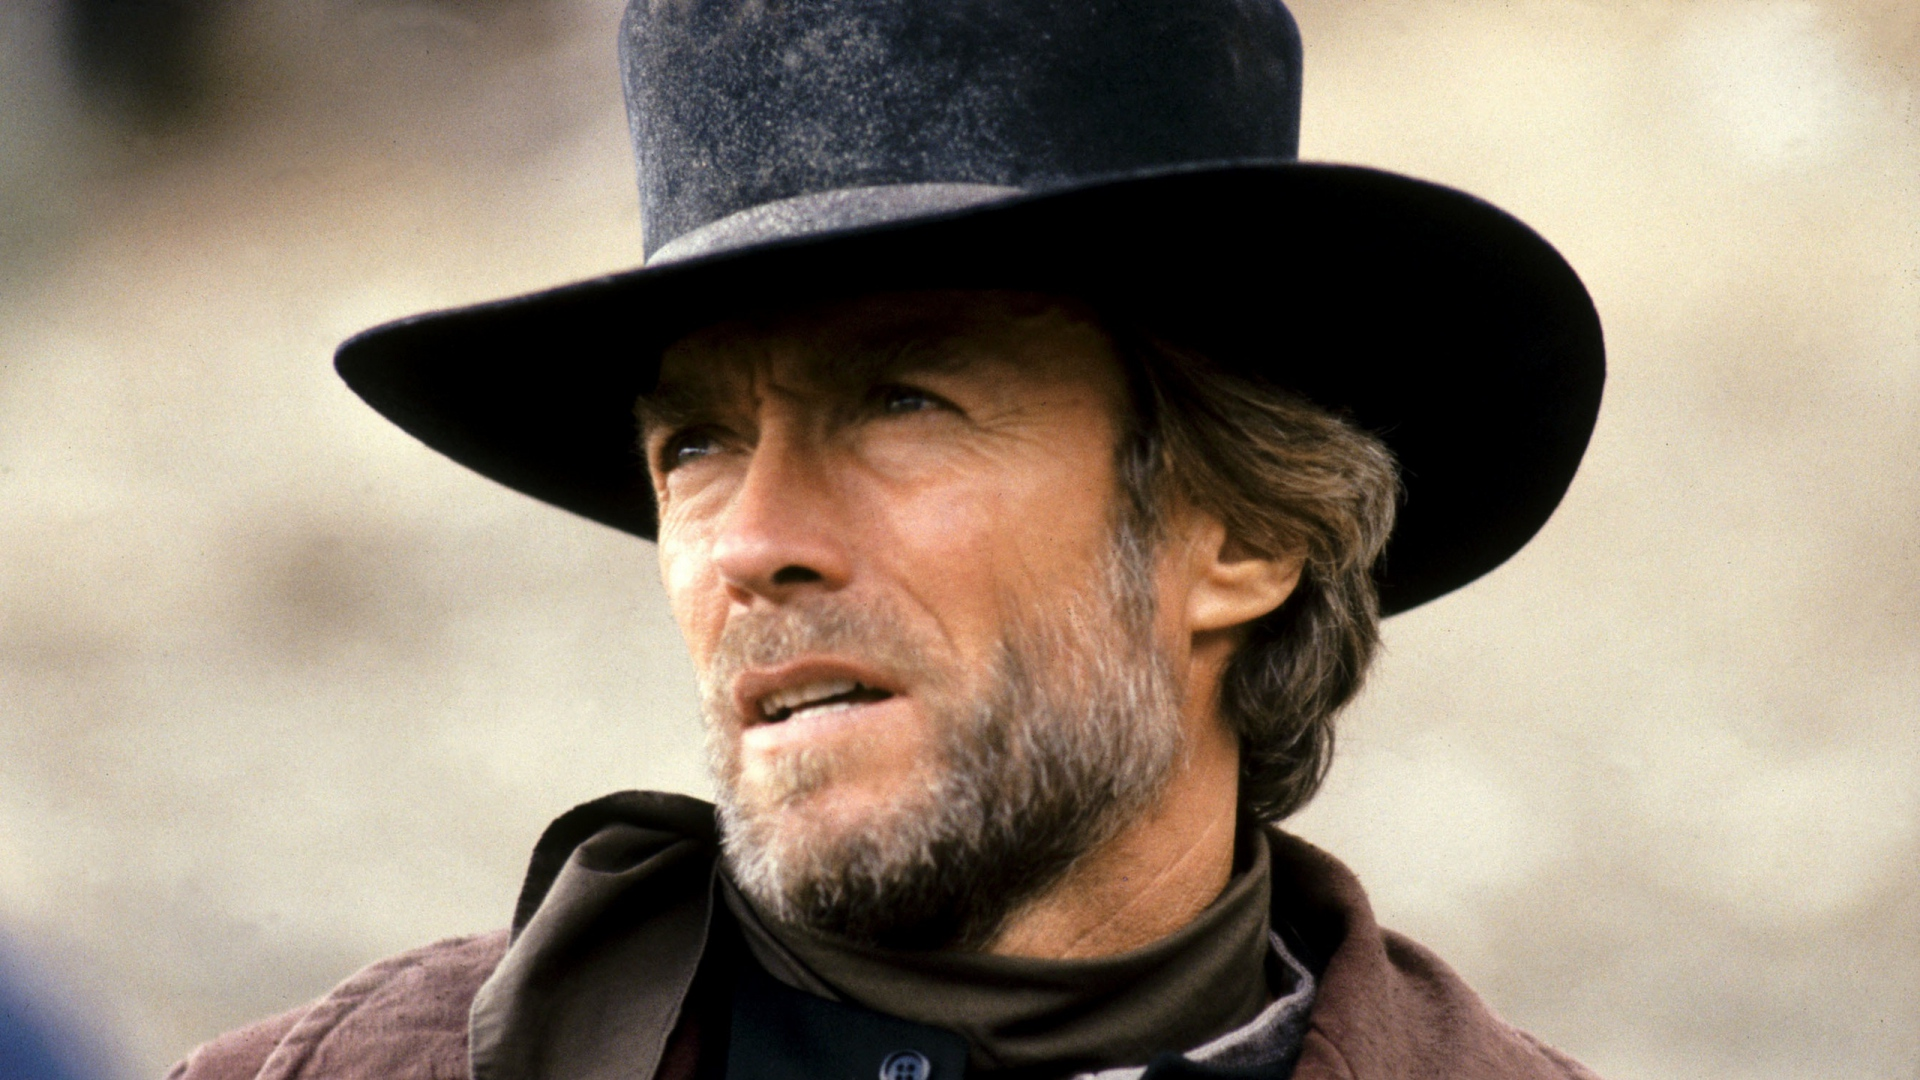 7 Hd Clint Eastwood Wallpapers